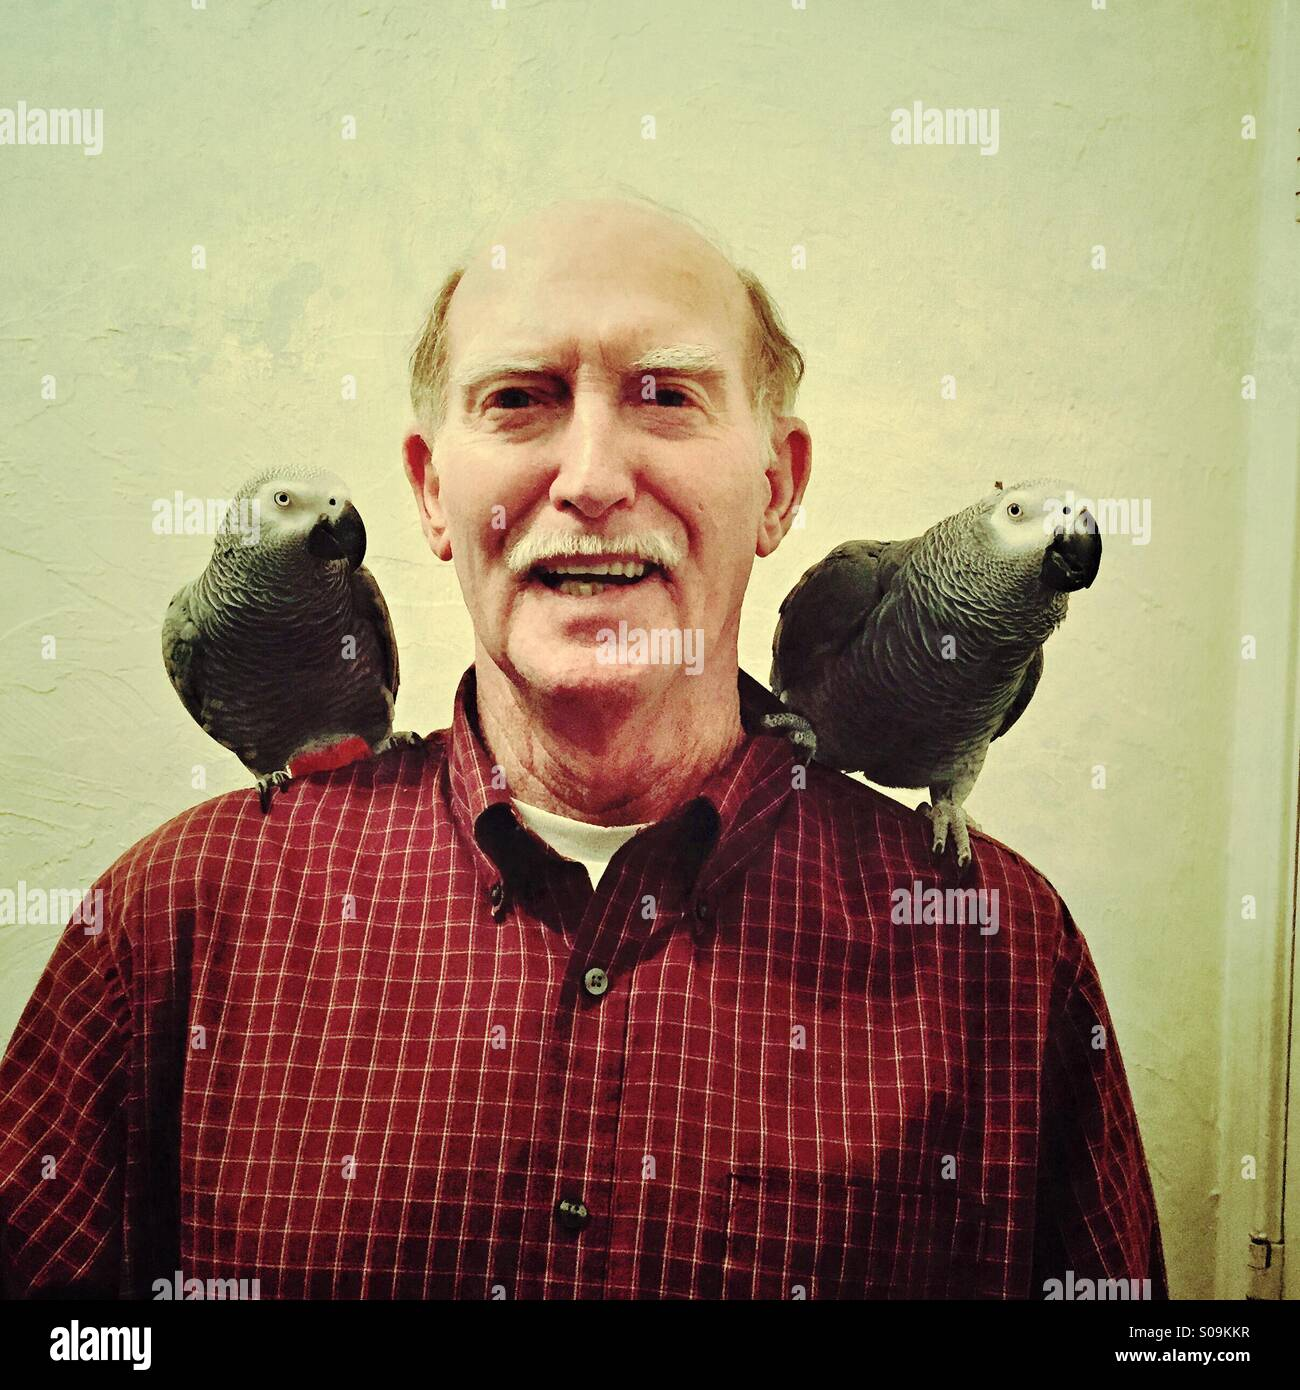 A senior Caucasian man smiles while showing off his two pet African Gray parrots on his shoulders. - Stock Image